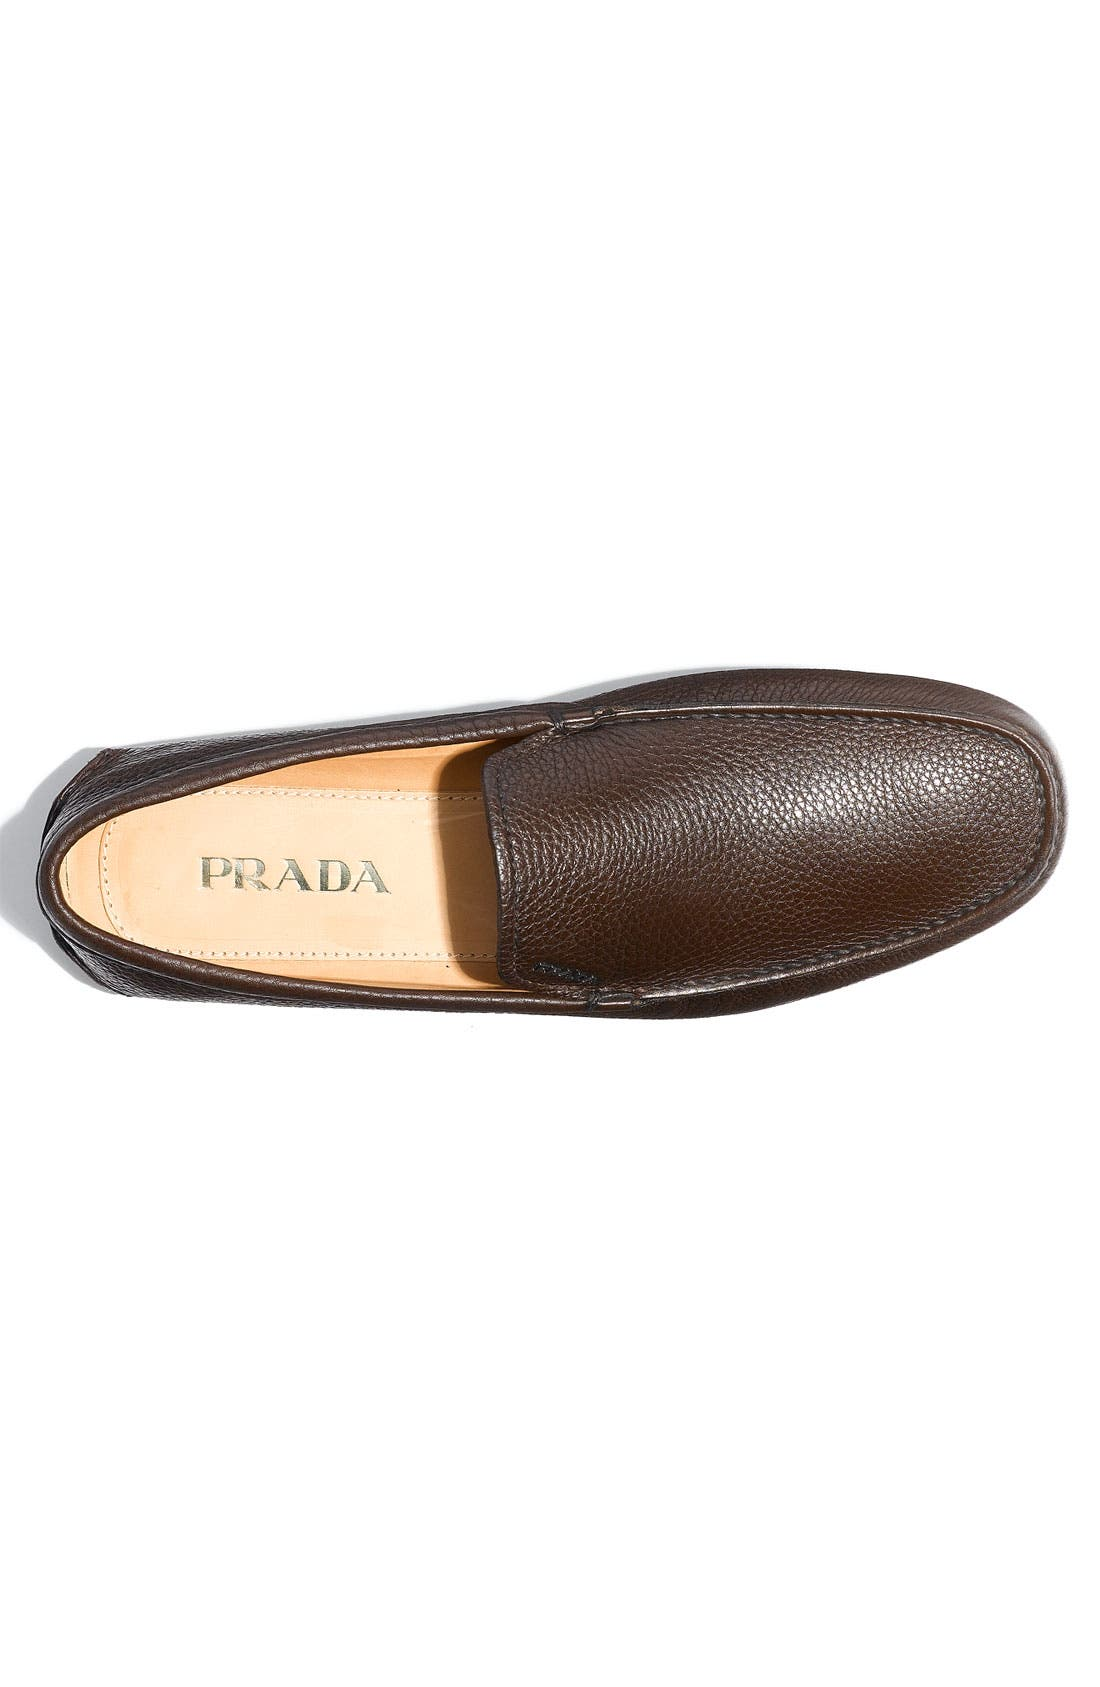 Alternate Image 3  - Prada Pebbled Leather Driving Shoe (Men)